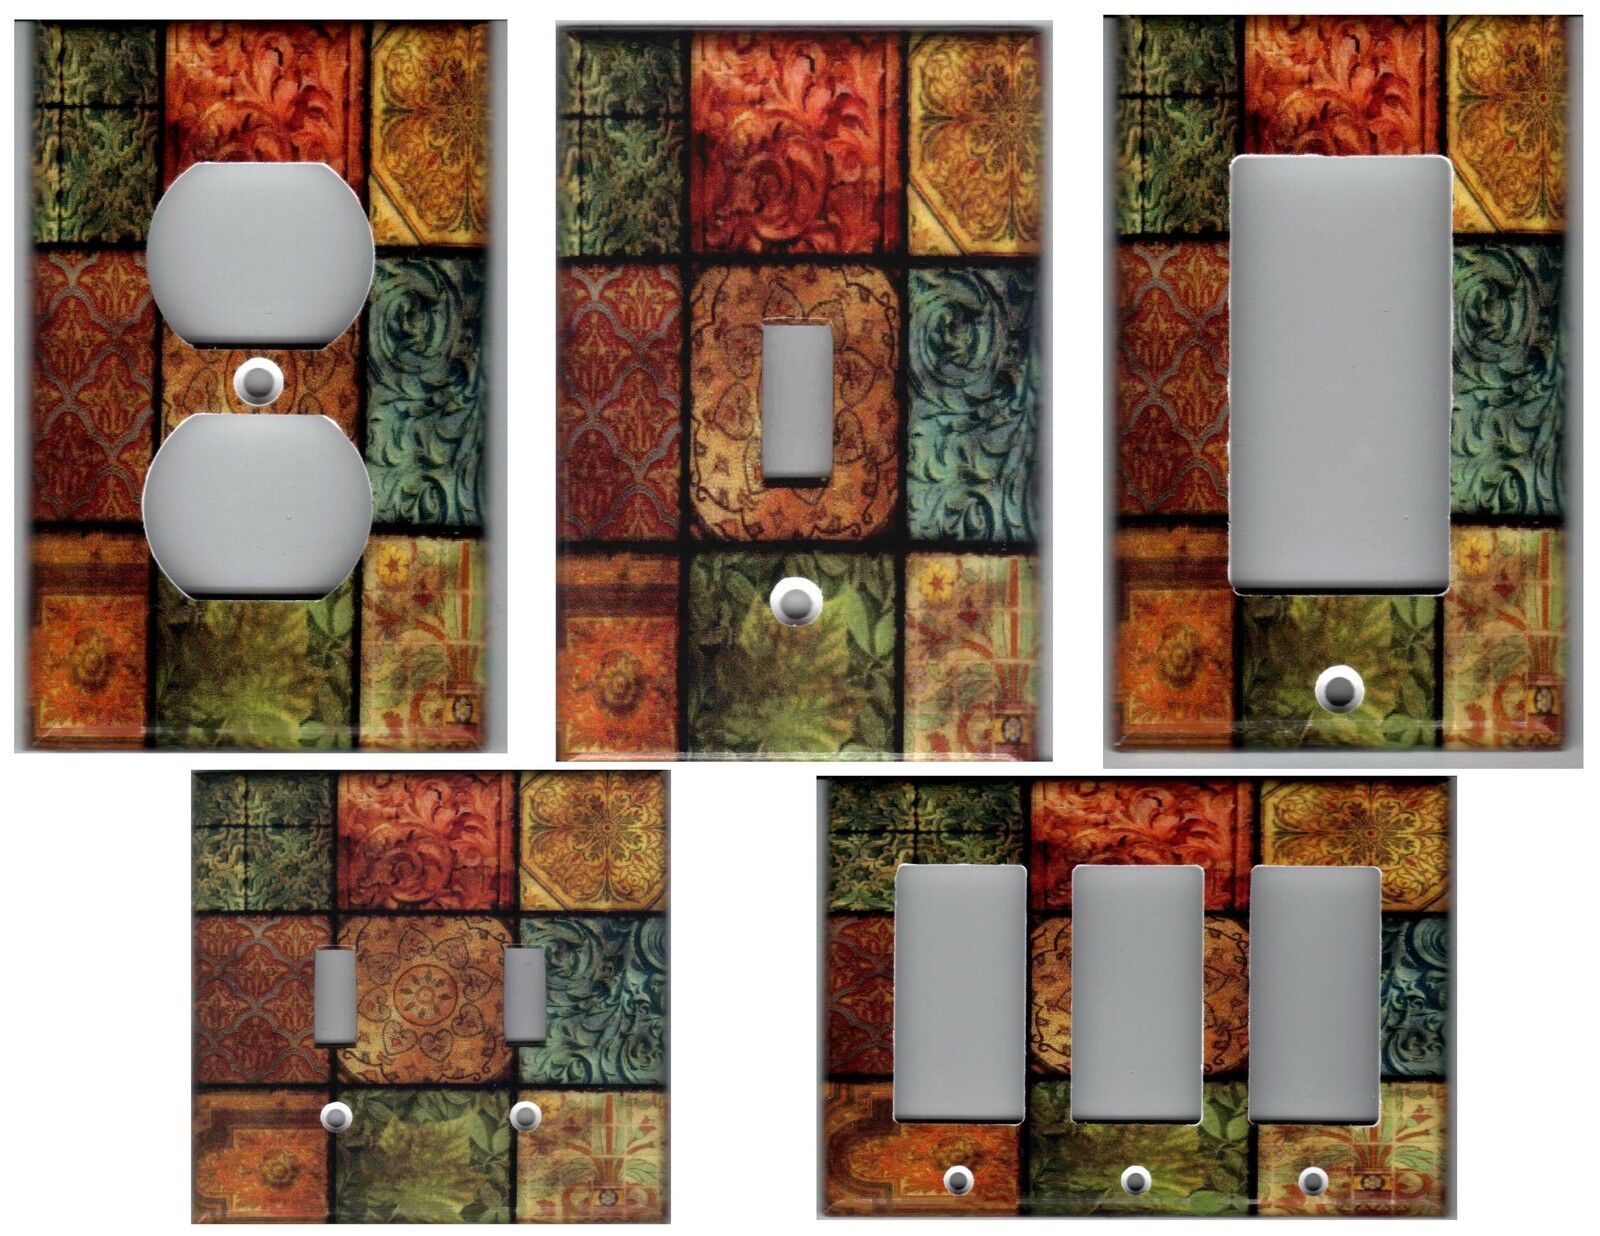 Tuscan Mosaic Tile Print - Tuscany Home Decor Light Switch Plate